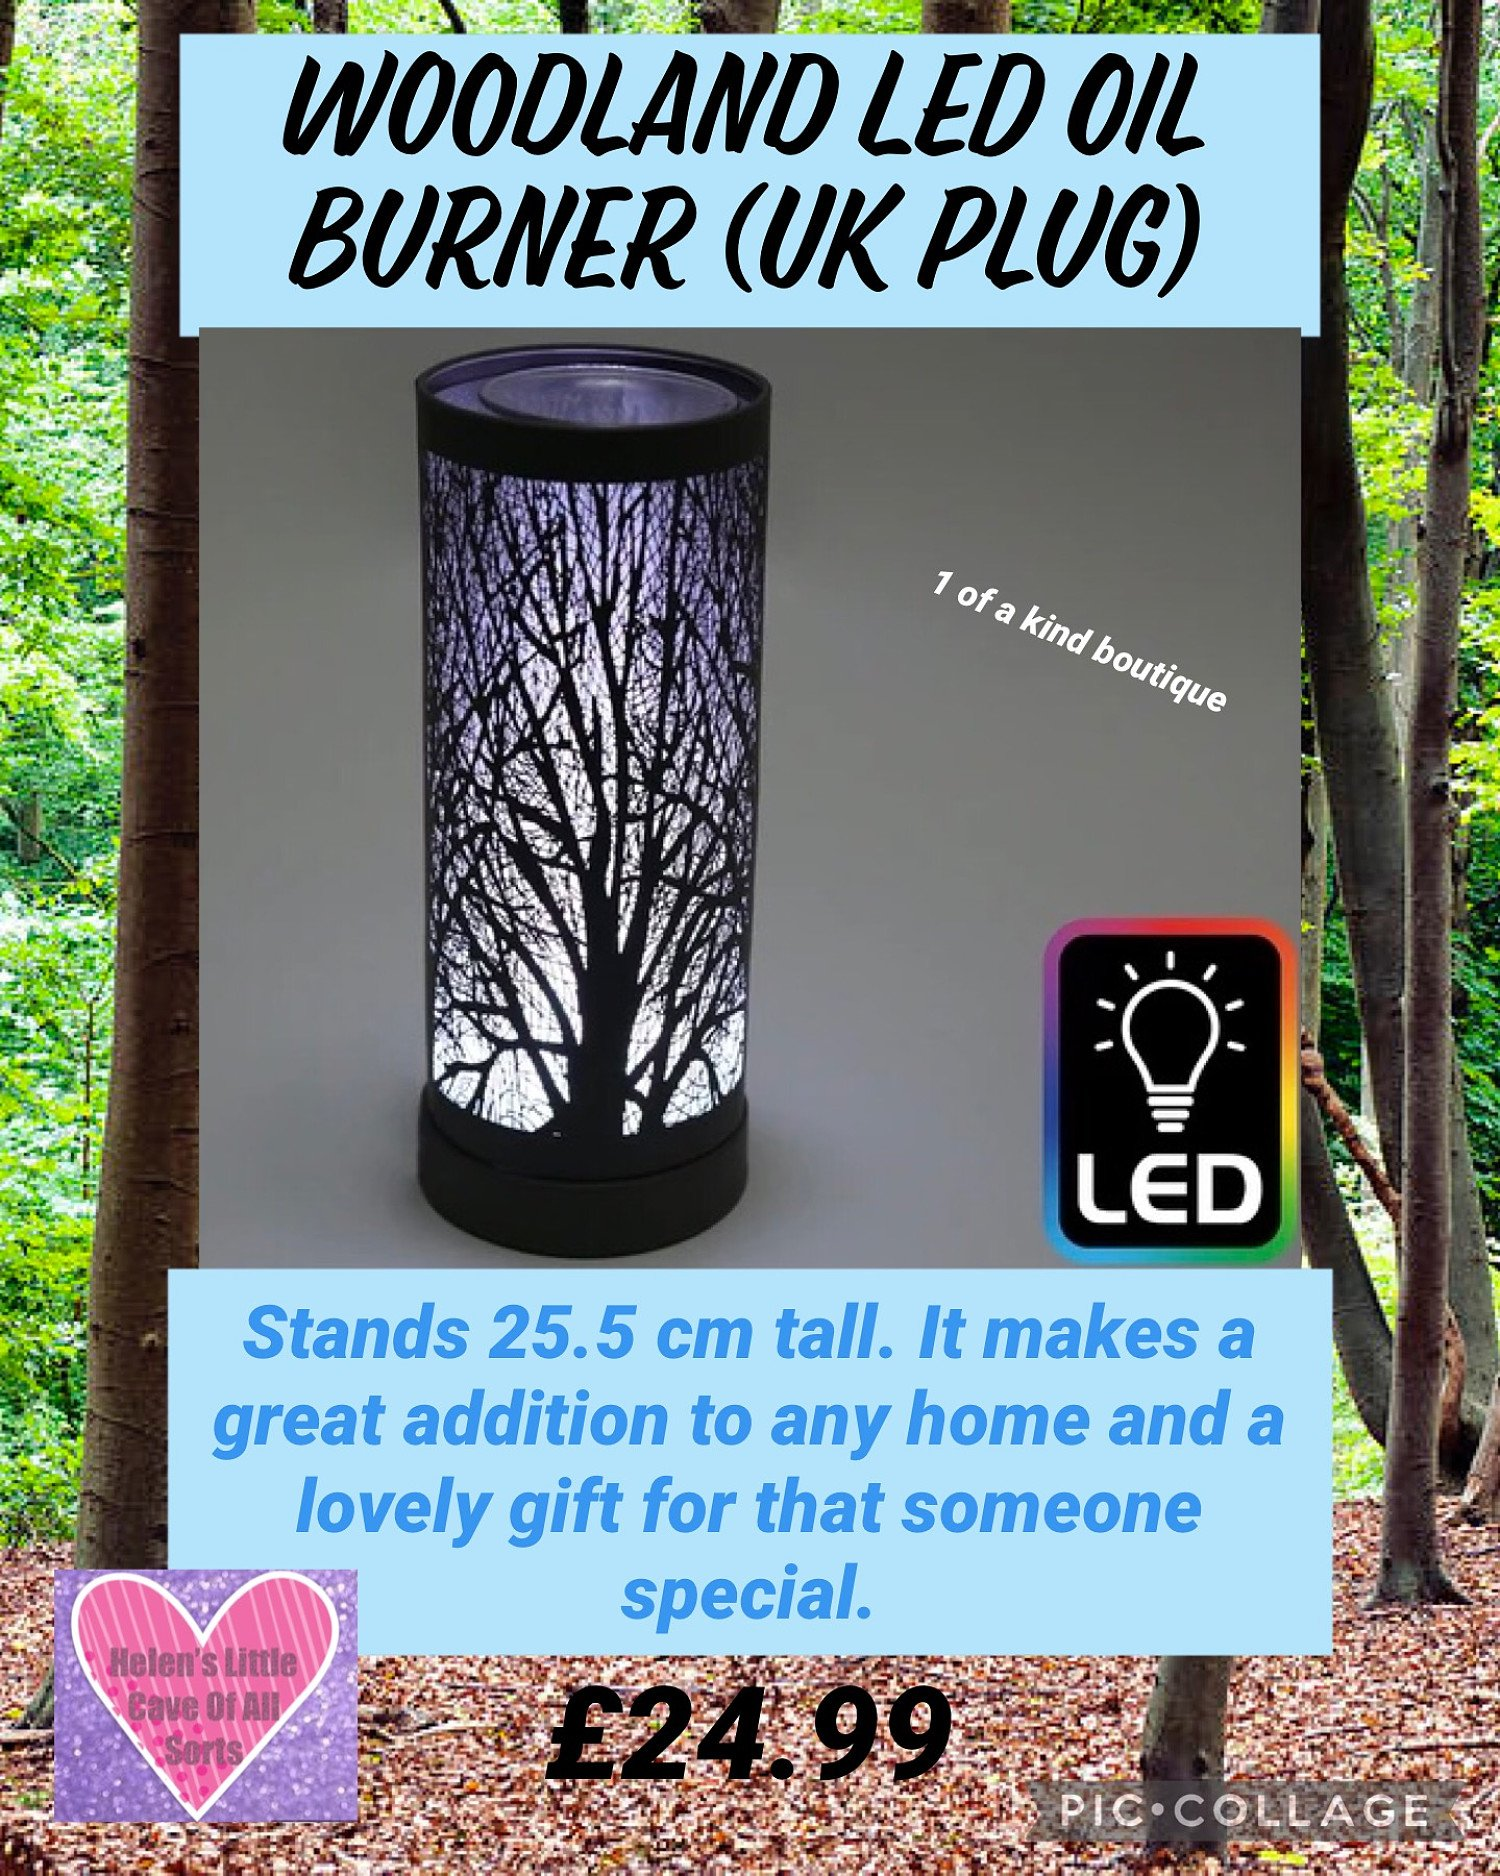 Woodland LED Oil Burner (UK Plug) Free Postage